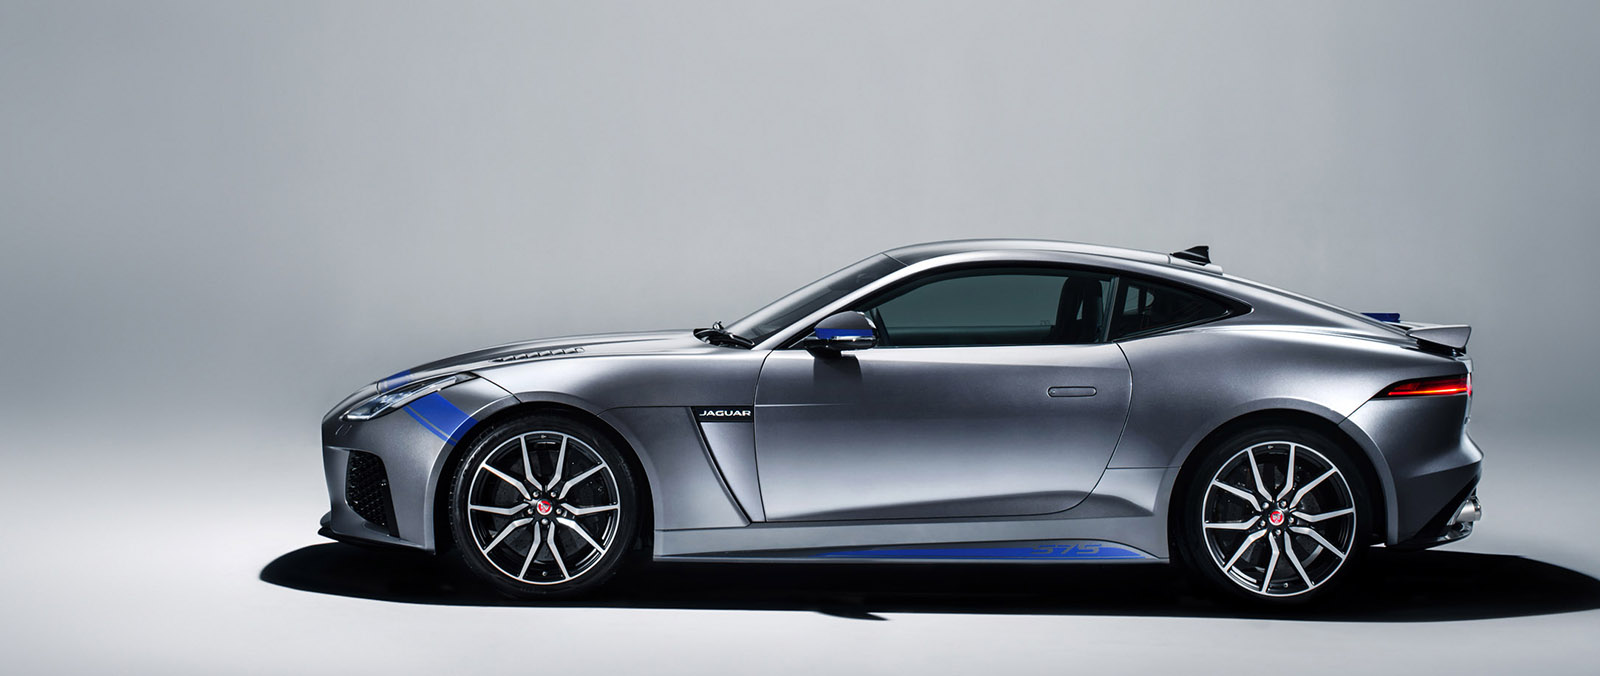 Graphic Pack verfraait Jaguar F-TYPE SVR